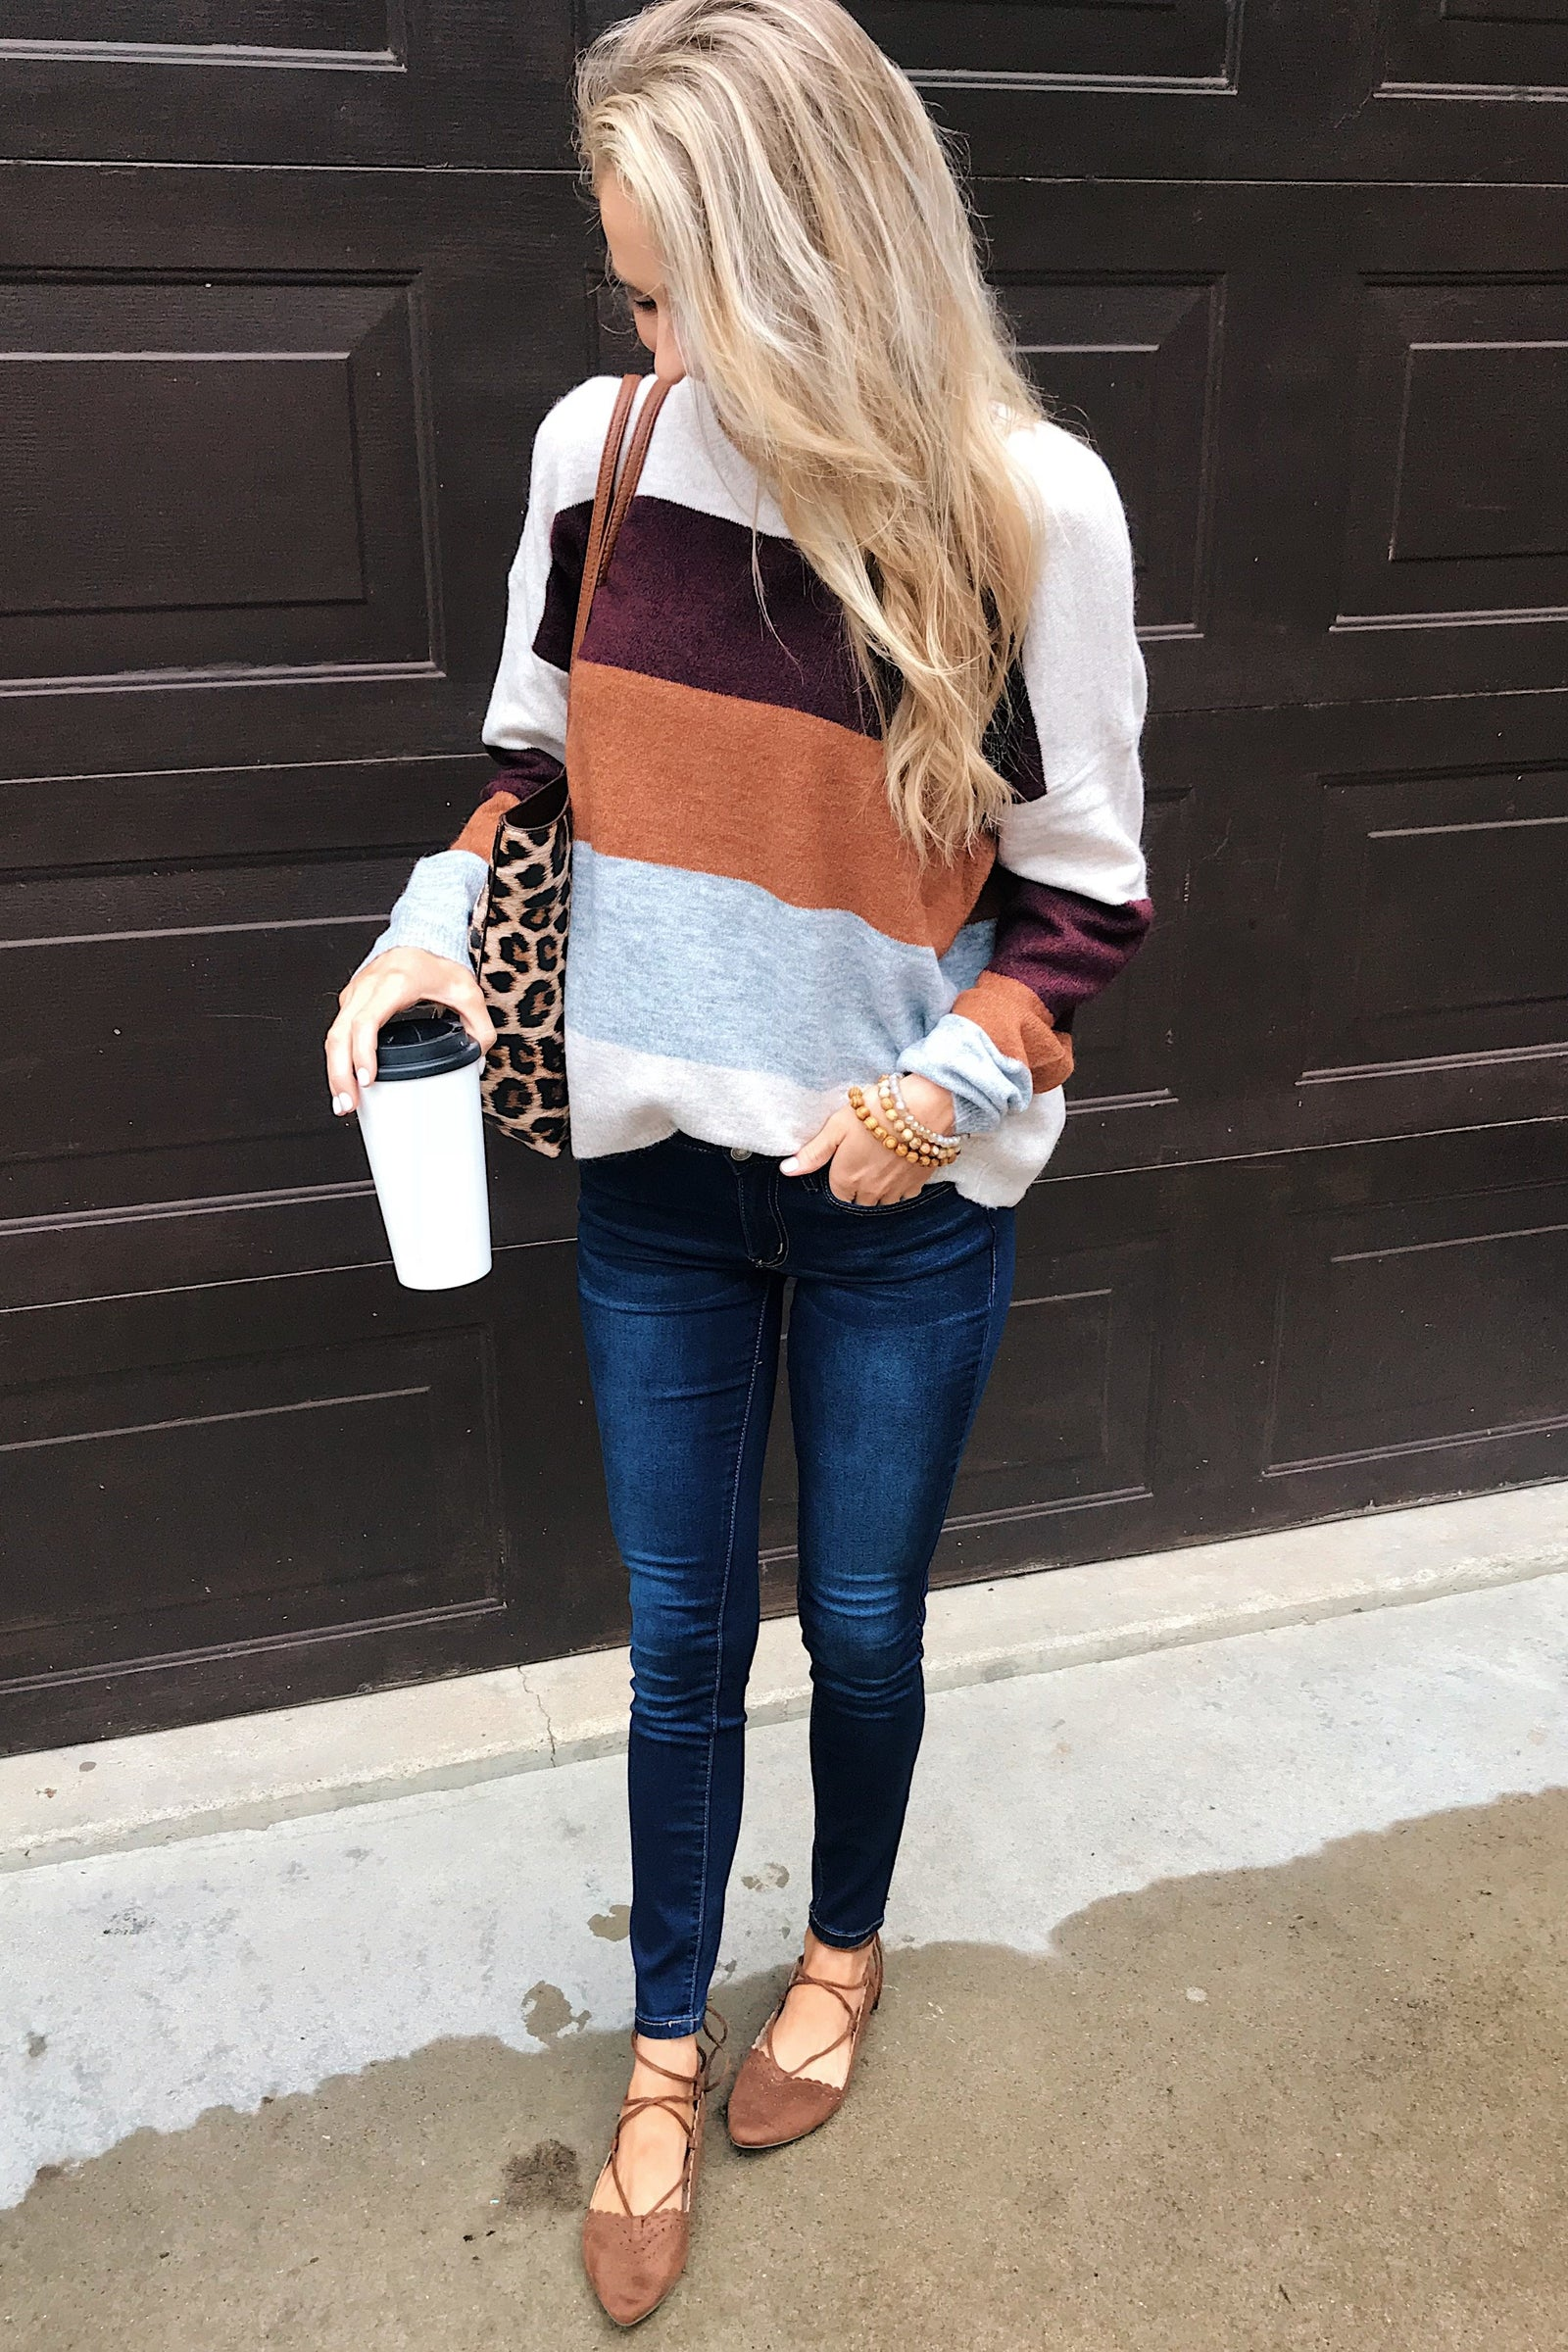 Mountain Getaway Sweater- Burgundy & Natural Tones